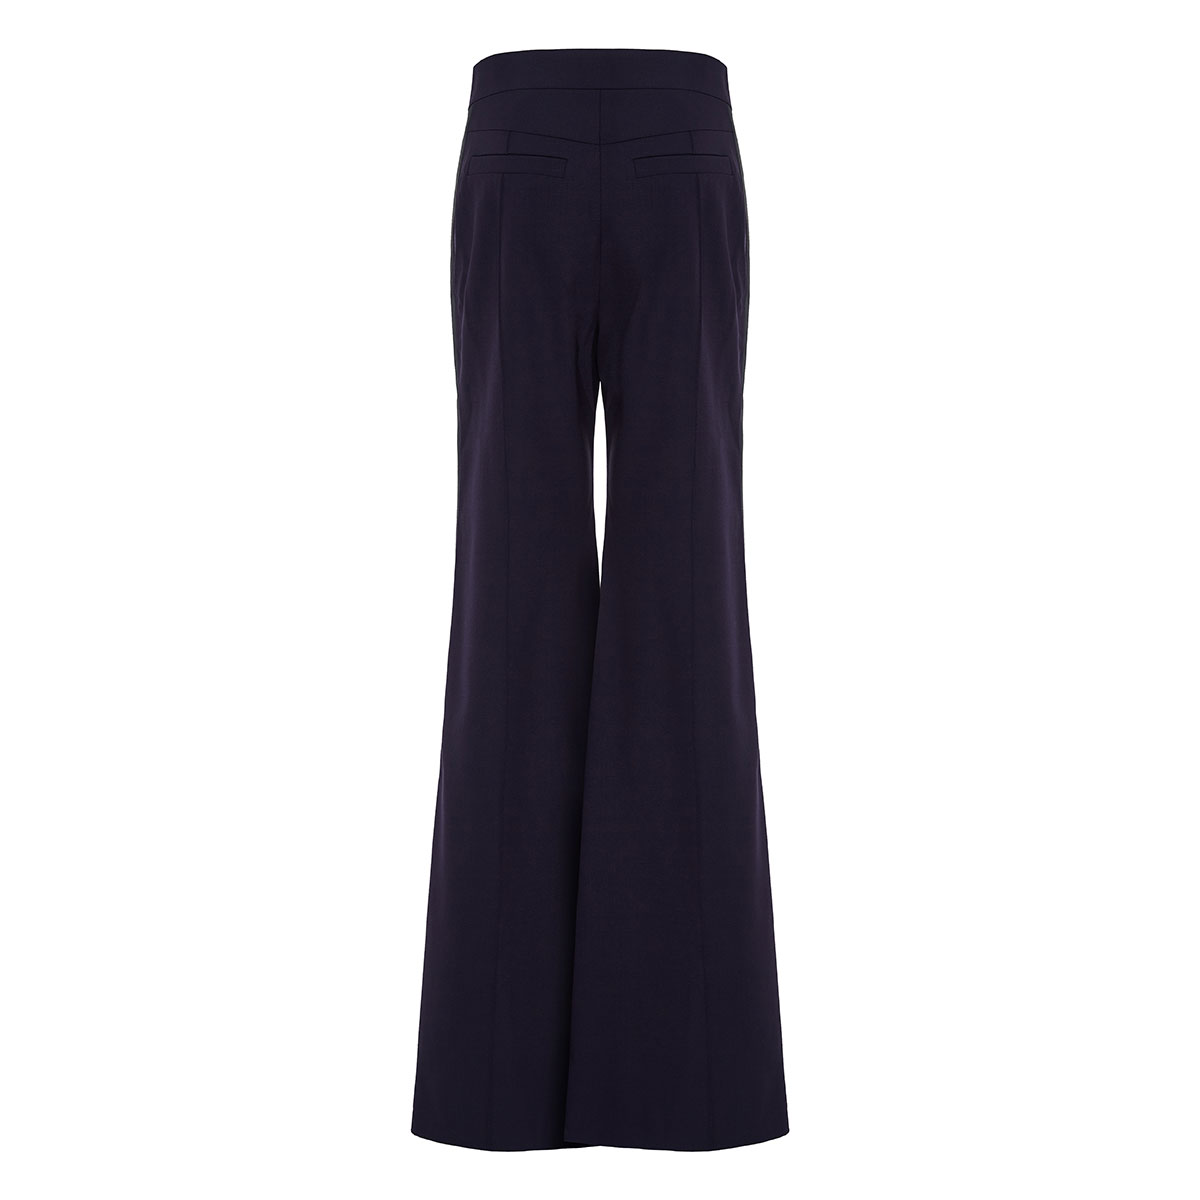 Flared tailored trousers